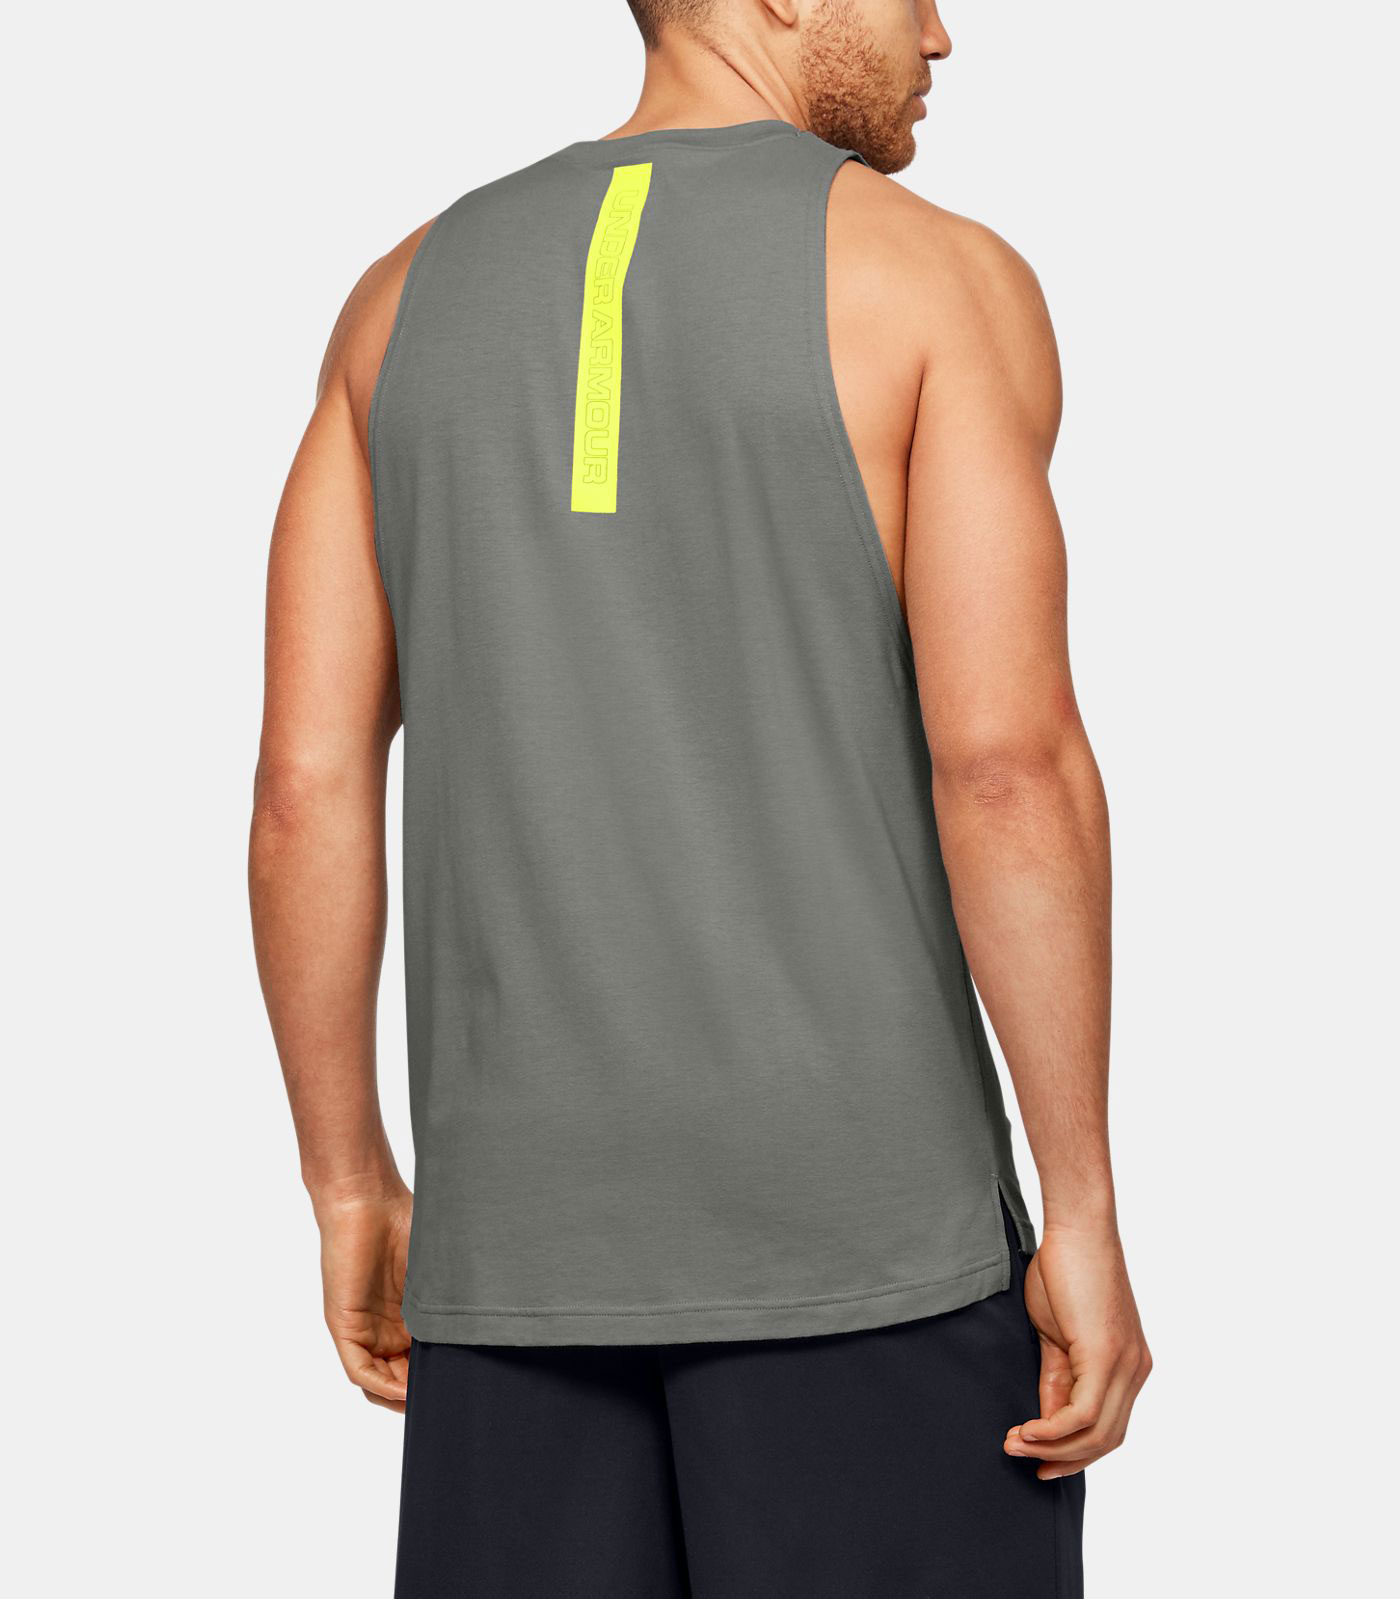 curry-7-our-history-basketball-tank-top-2